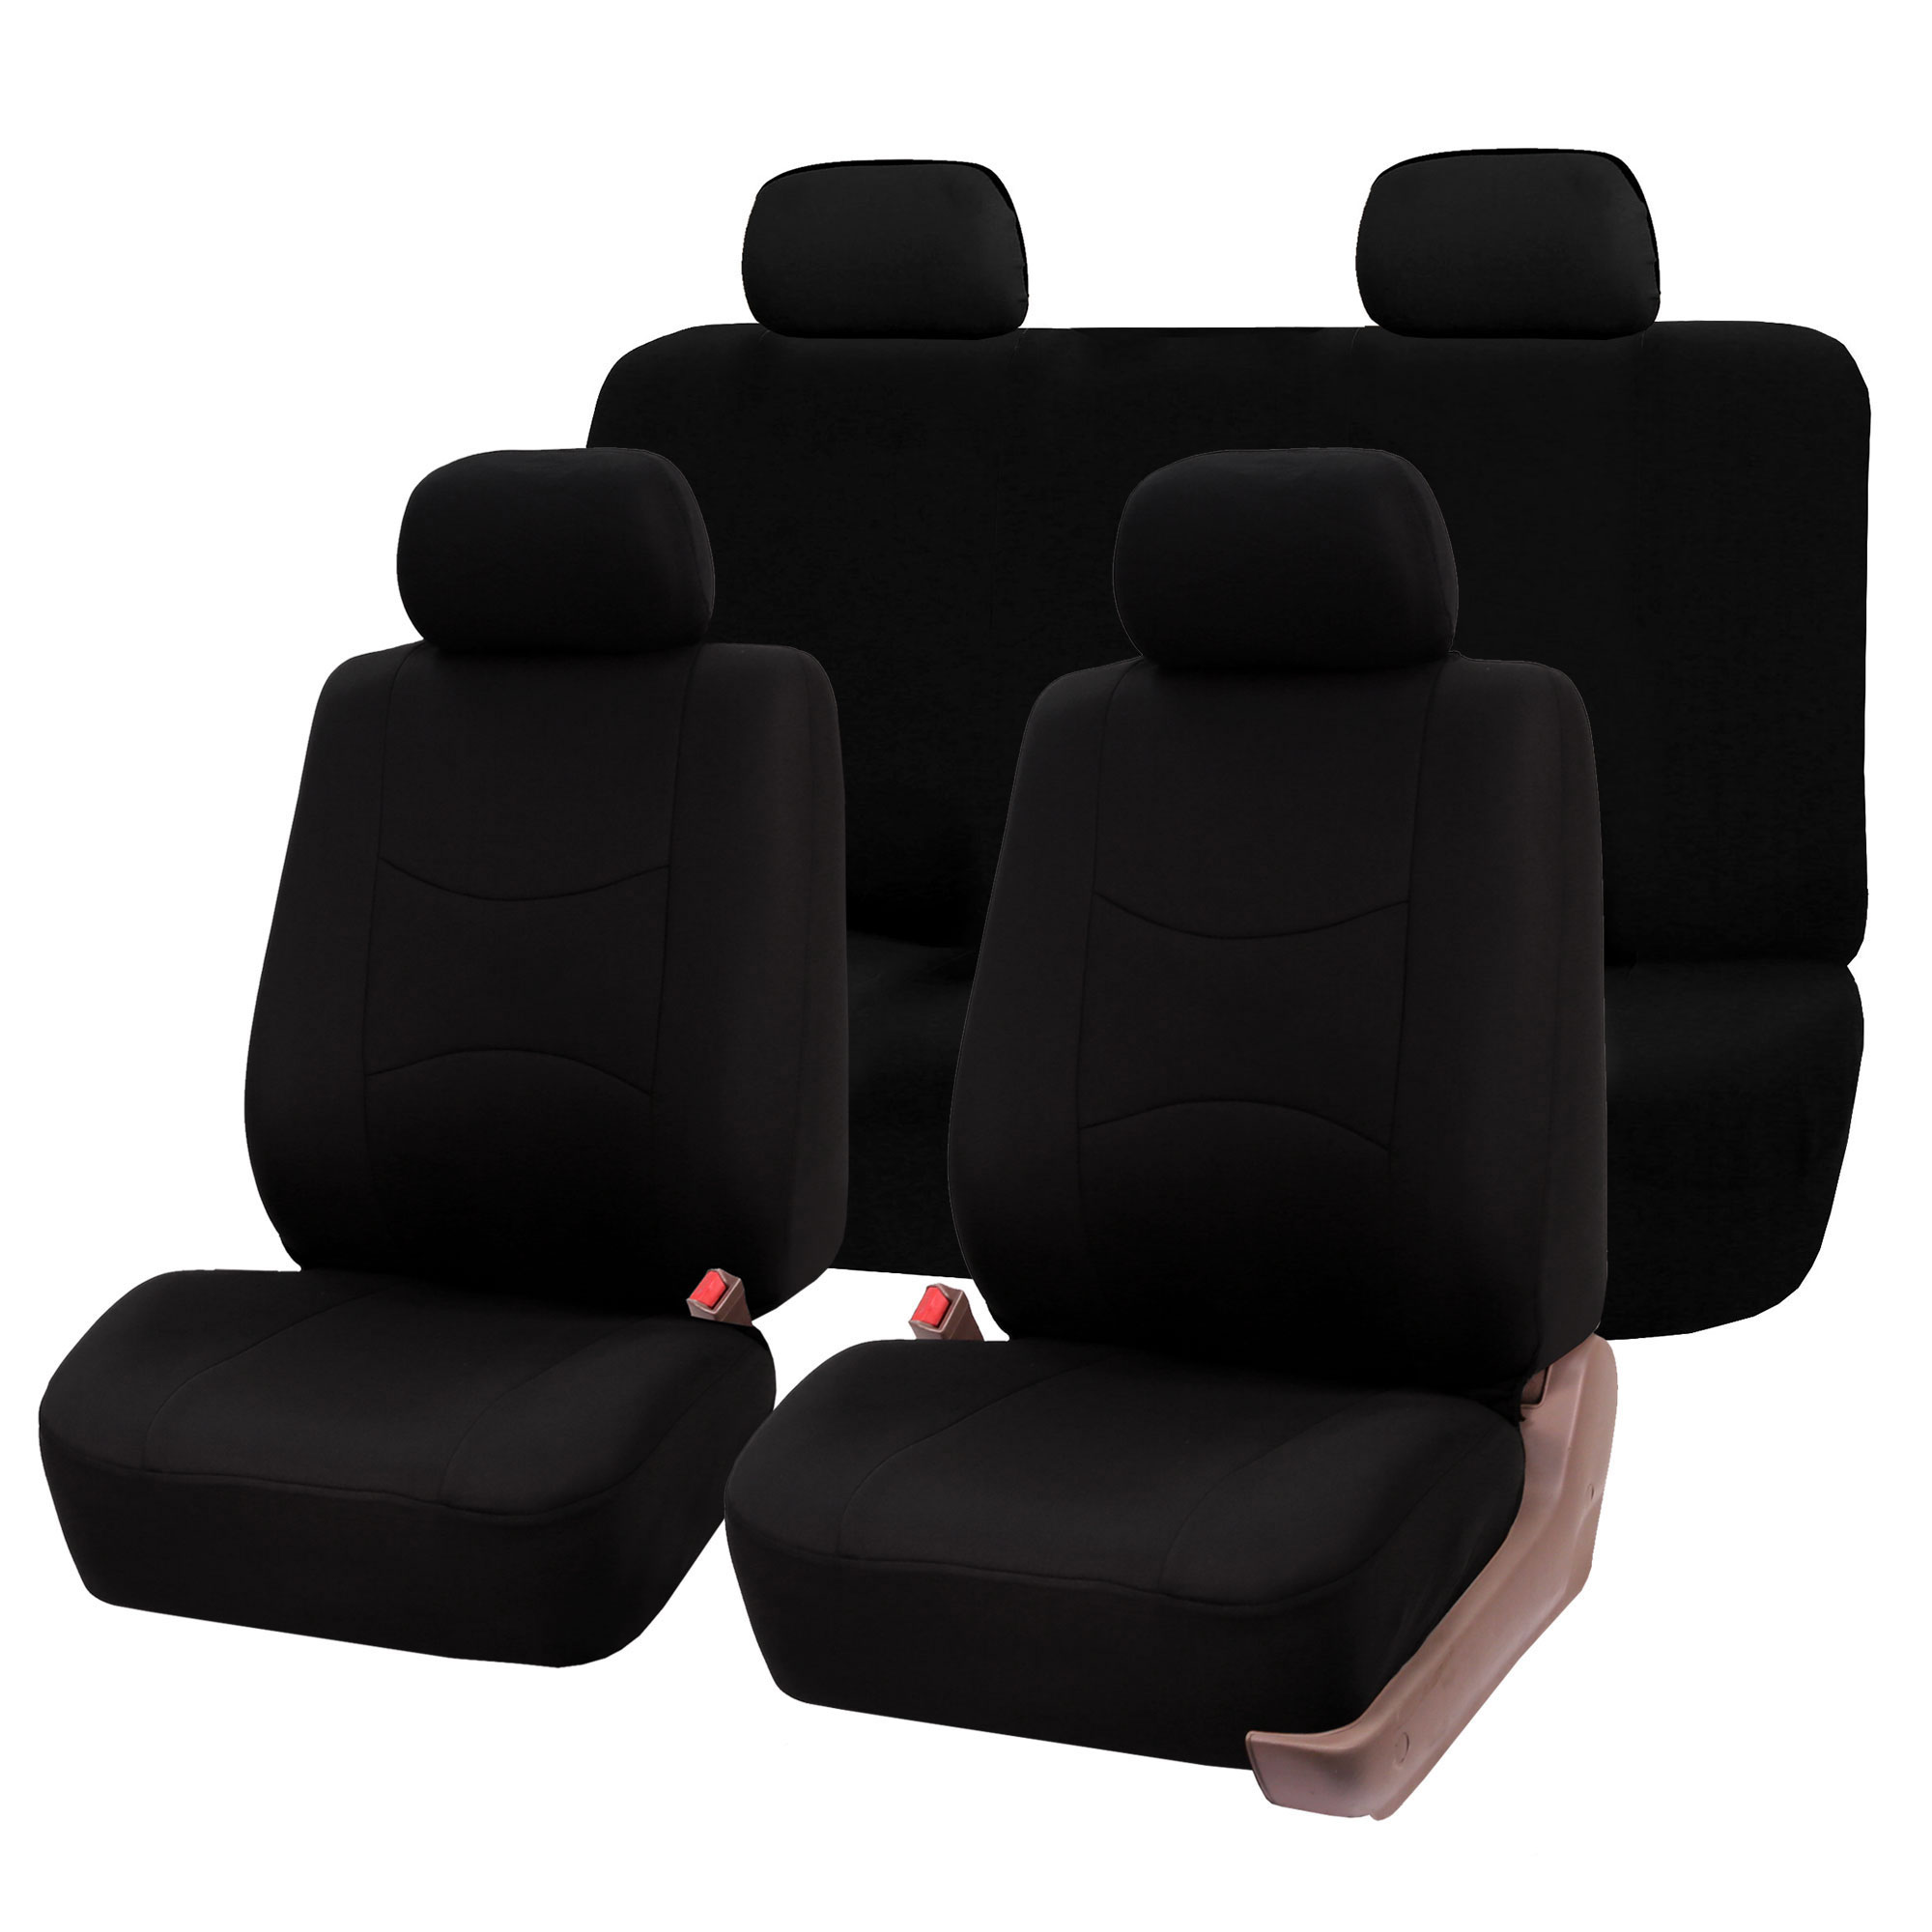 High Quality Luxury Car Seat Cover Front Rear Black For